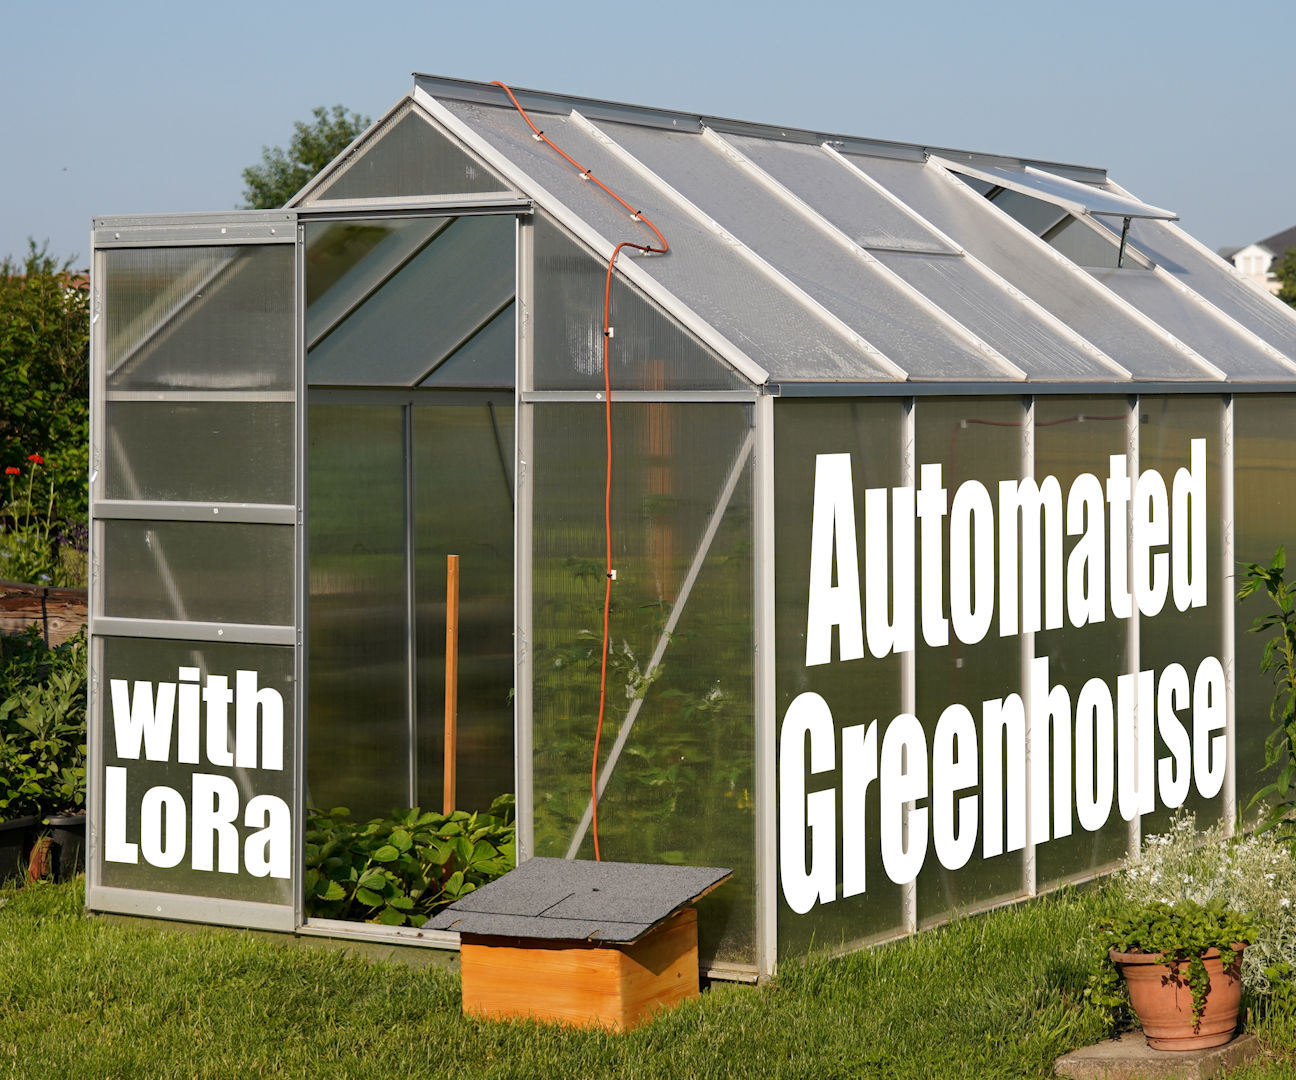 Automating a Greenhouse With LoRa! (Part 1)    Sensors (Temperature,  Humidity, Soil Moisture)